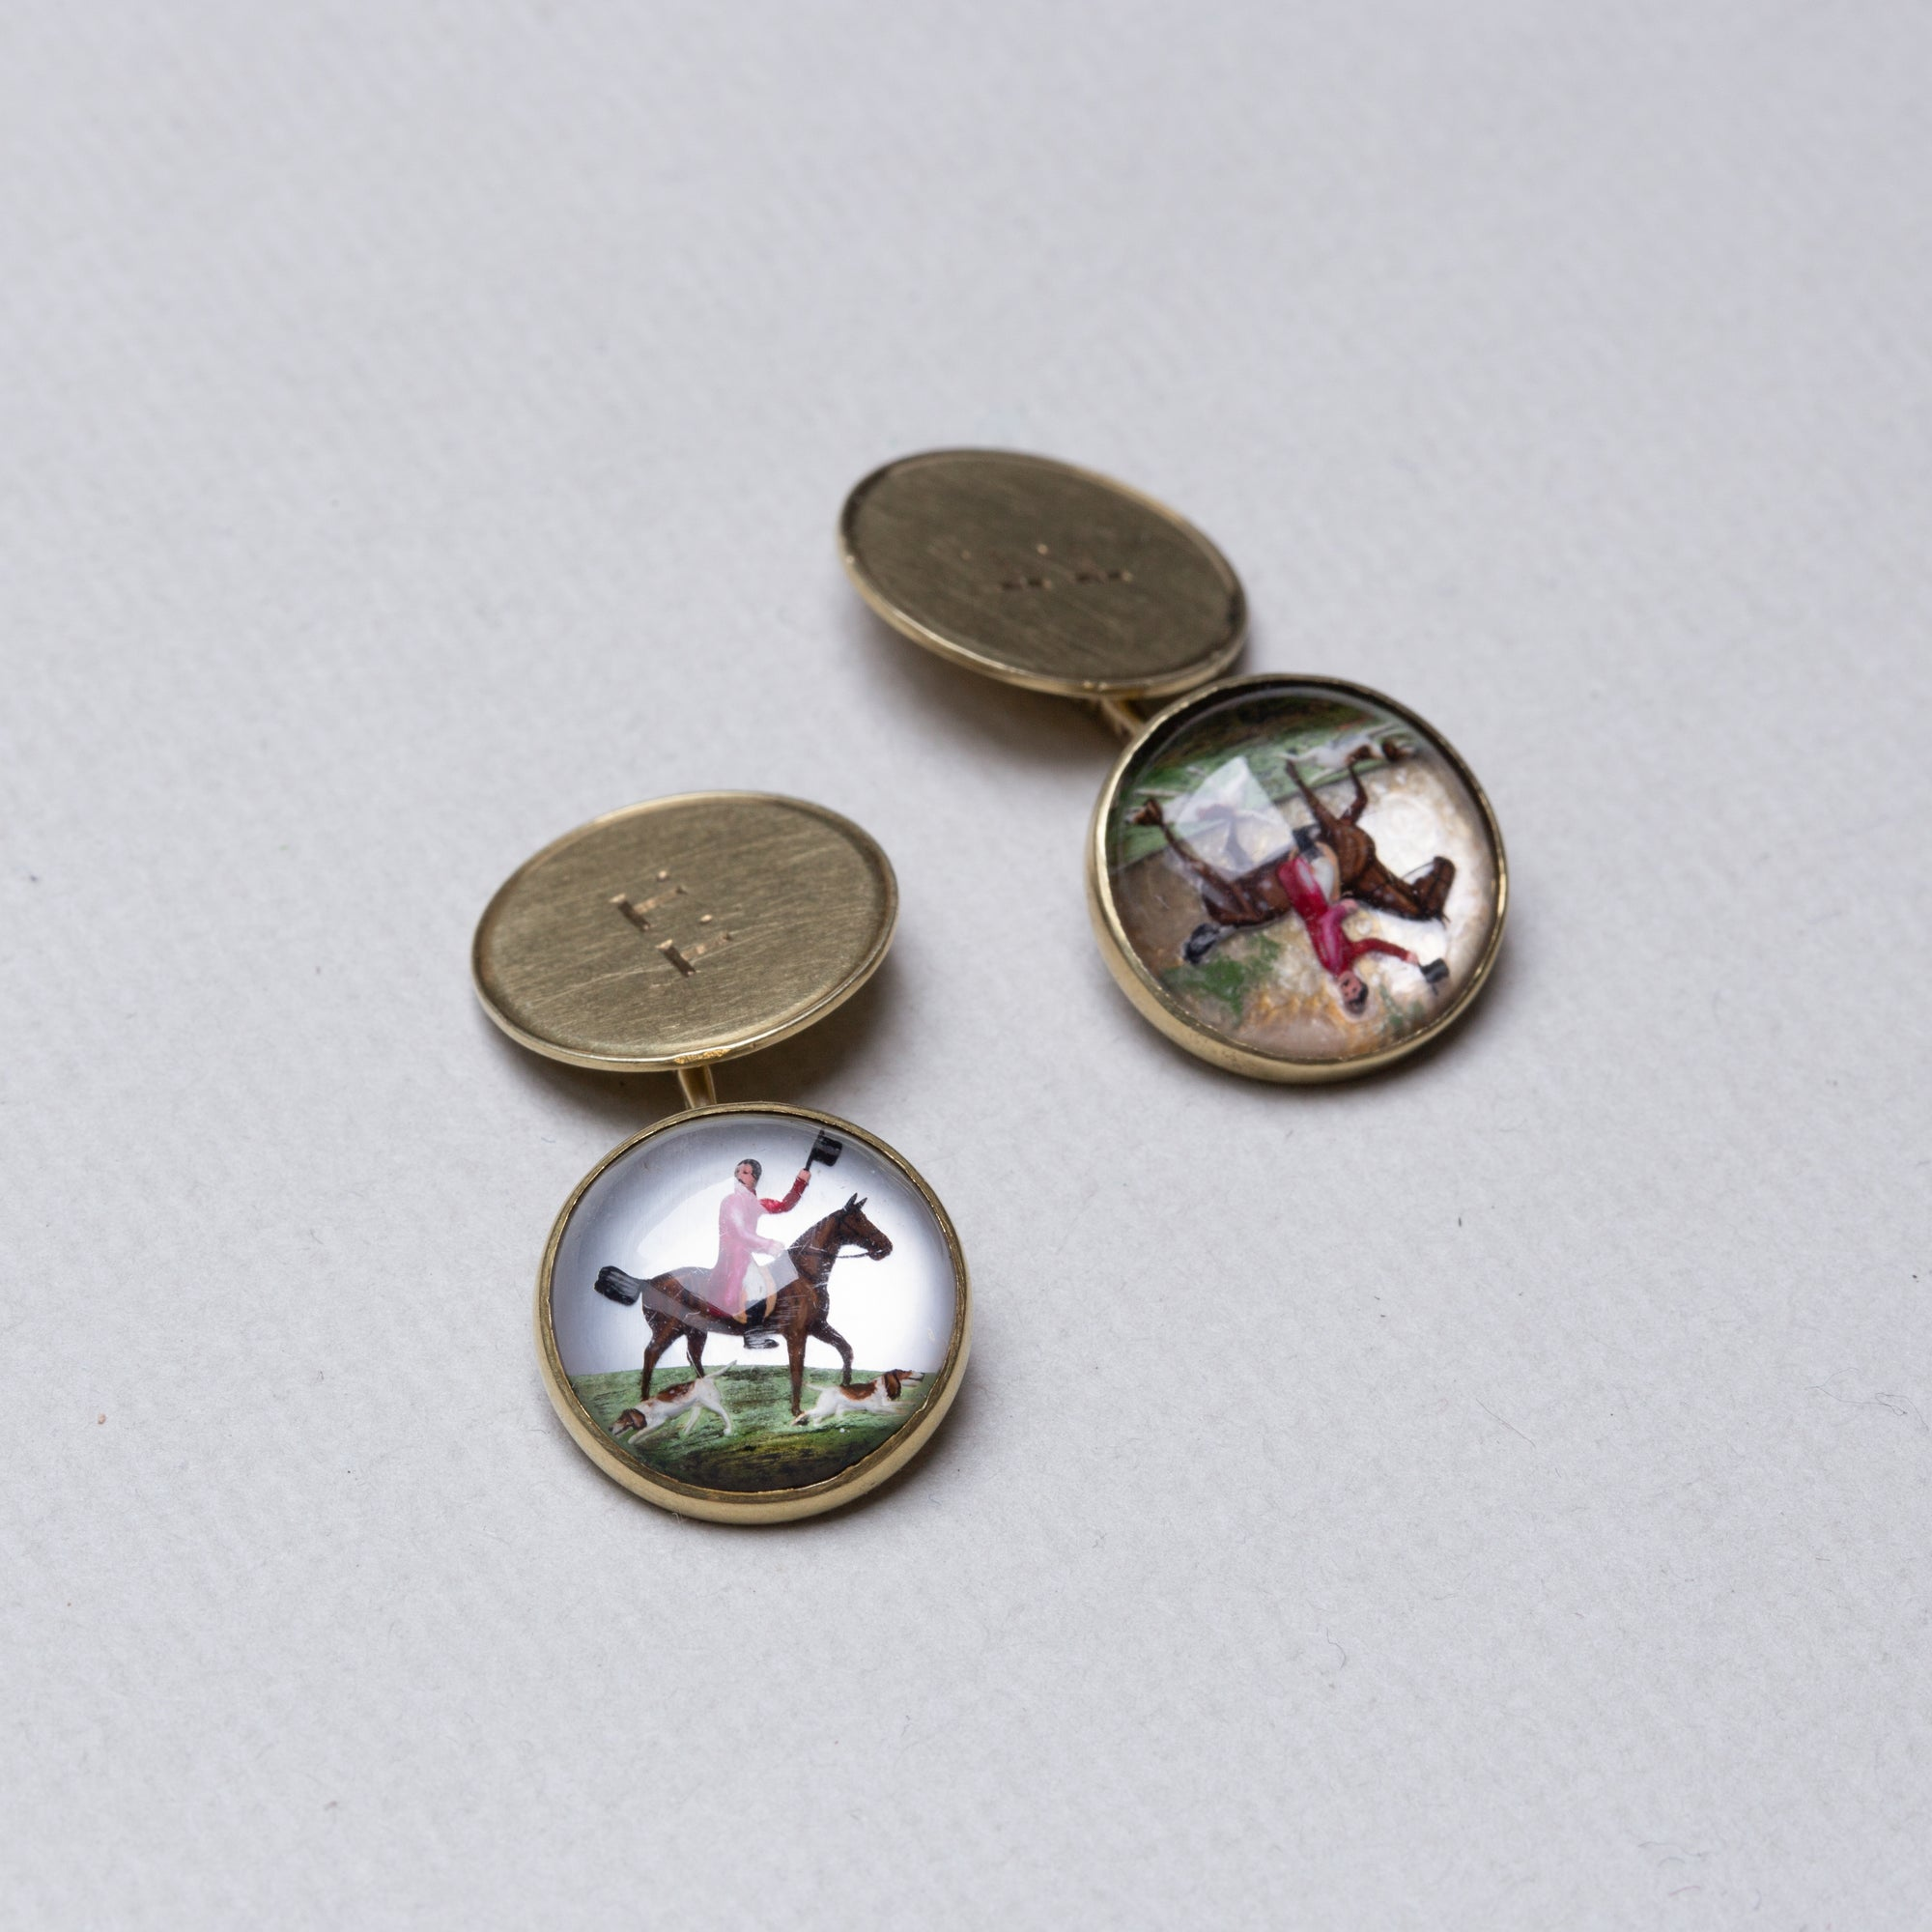 Vintage 14ct Gold Essex Glass Hunting Scene Cufflinks